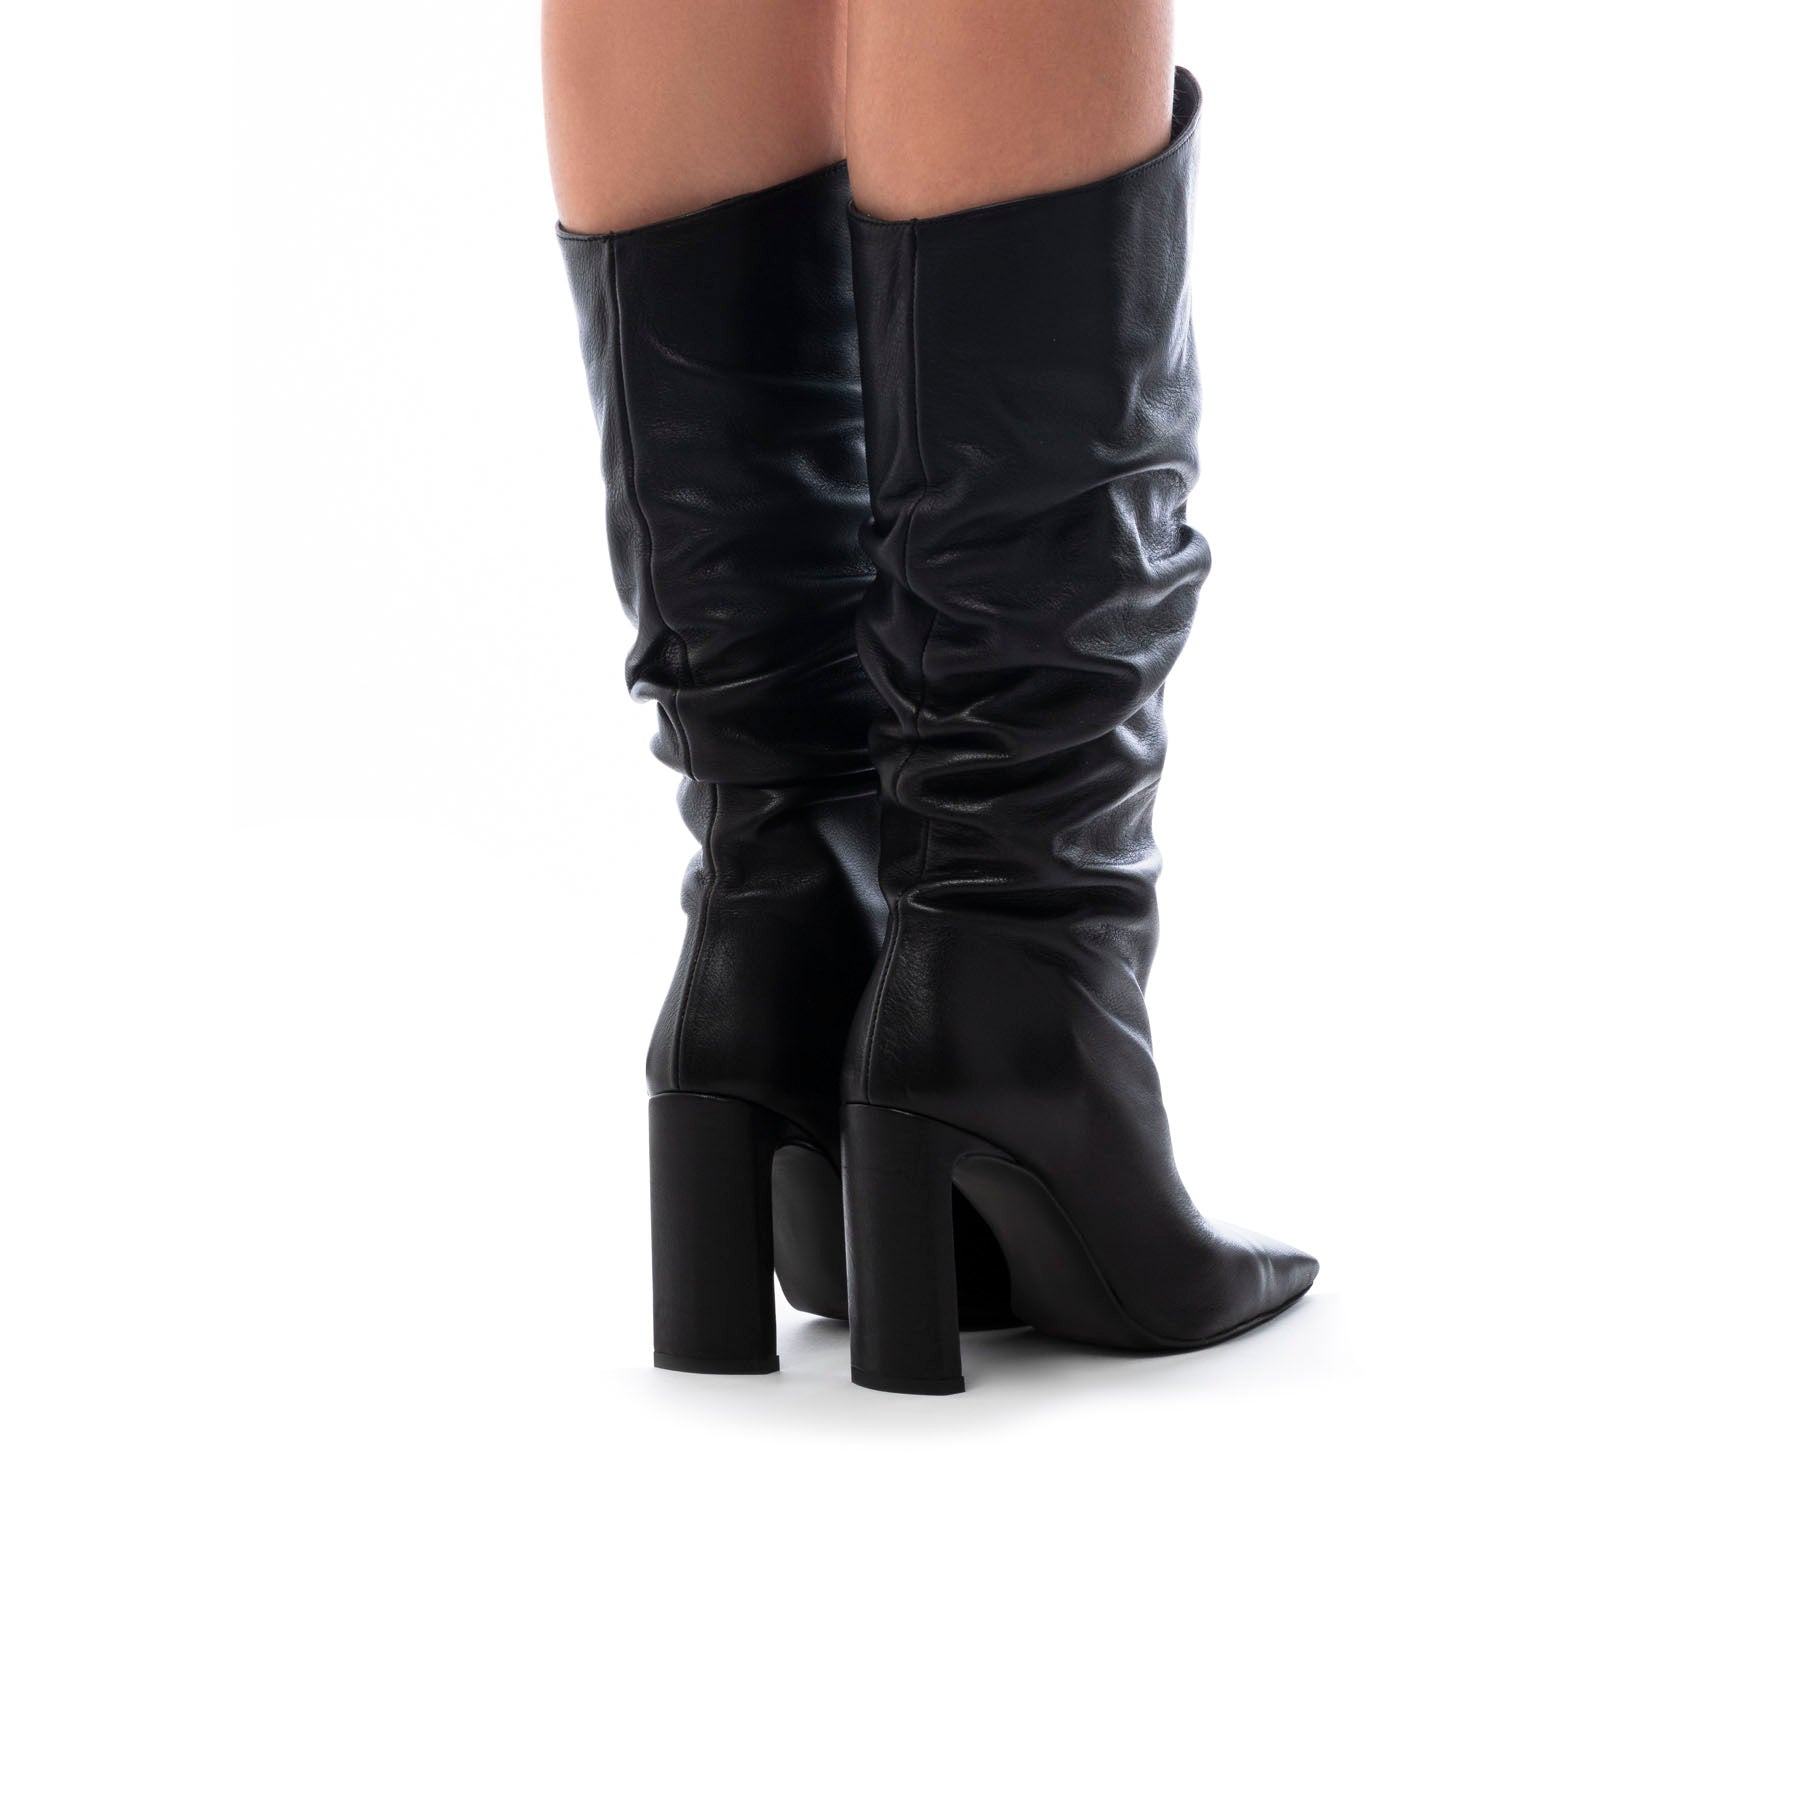 Yerevan Black Leather Boots